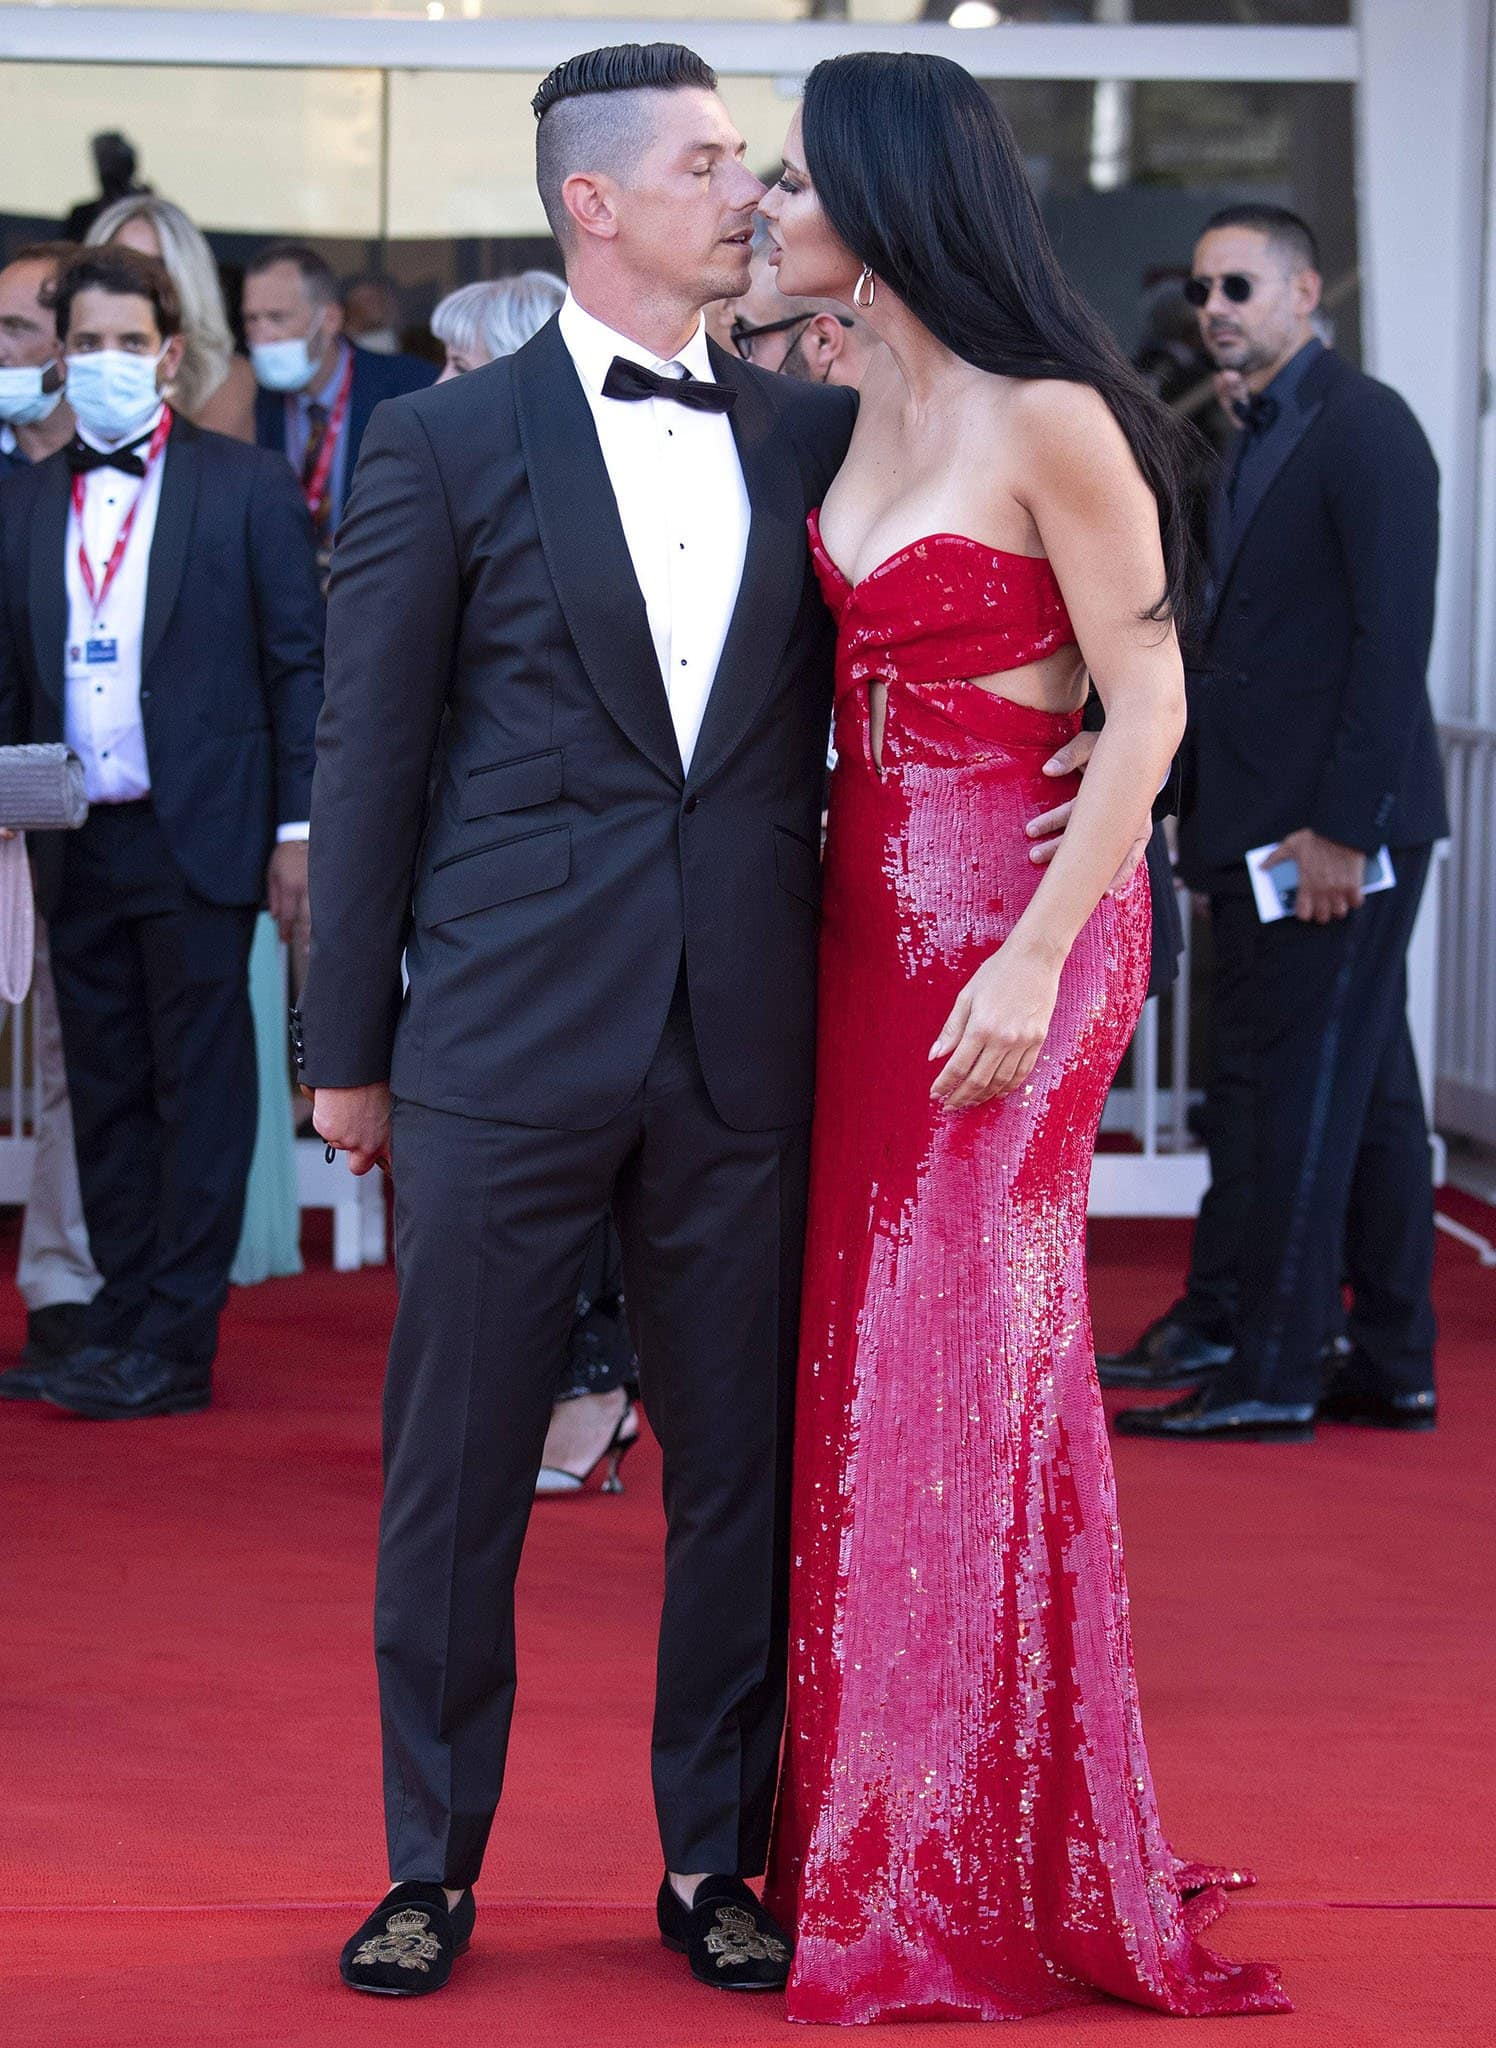 Adriana Lima and her new boyfriend Andre Lemmers III share a kiss at the Madre Paralelas premiere at the Venice Film Festival on September 1, 2021